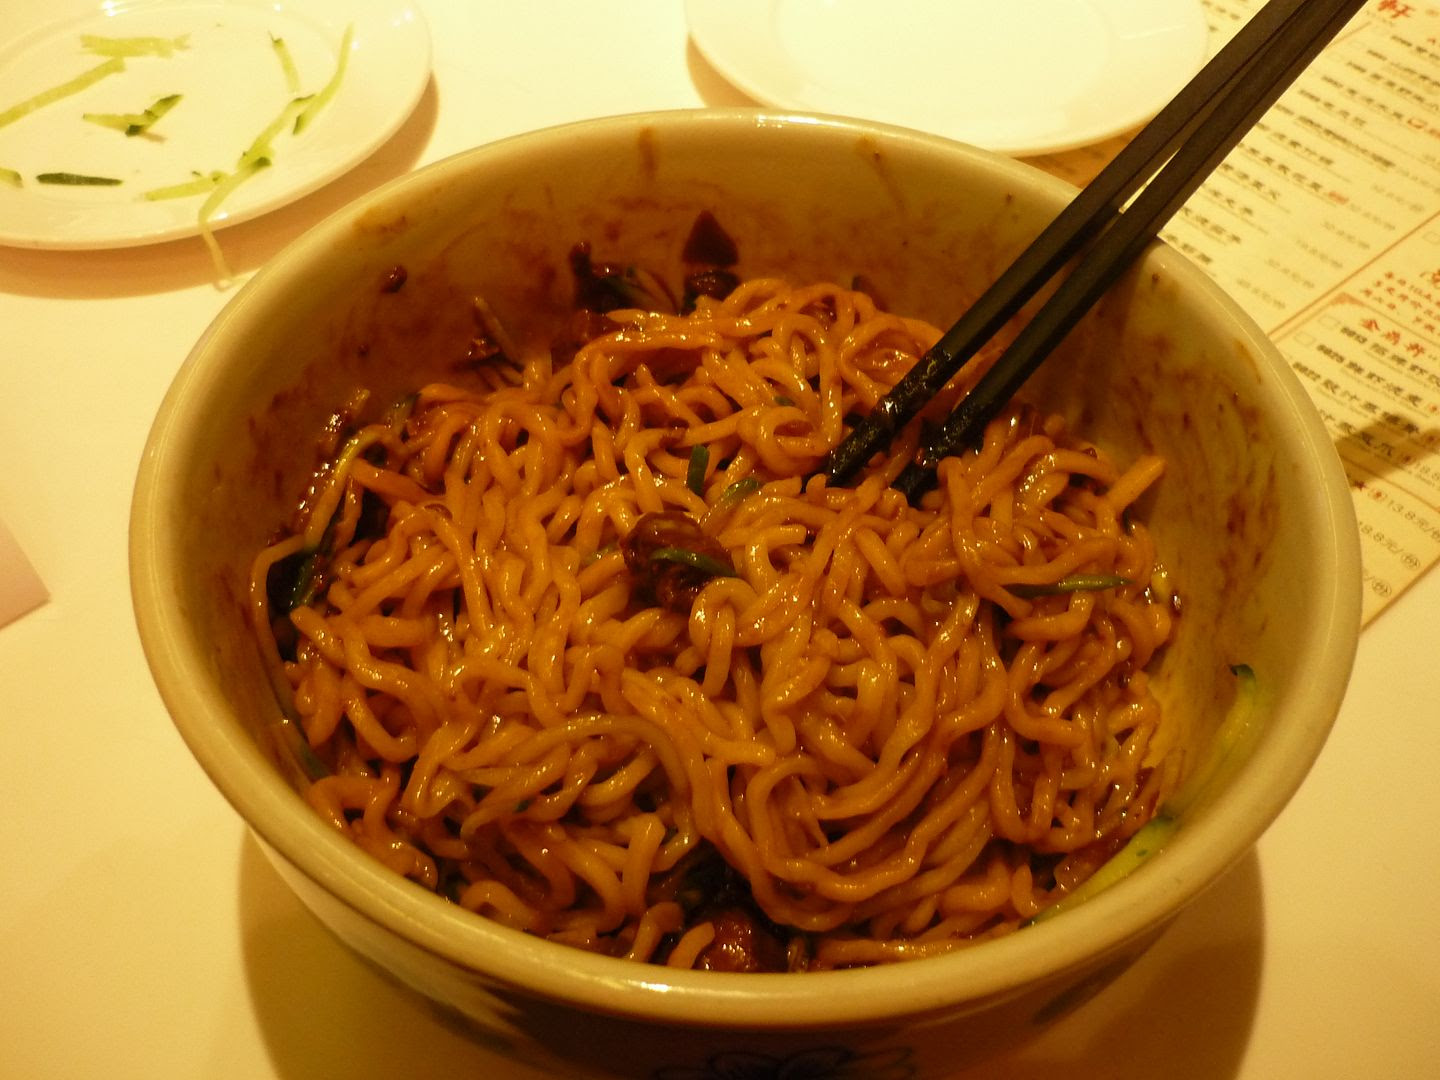 Noodles with Brown Sauce photo 2014-03-09143130_zpsfa450a5f.jpg